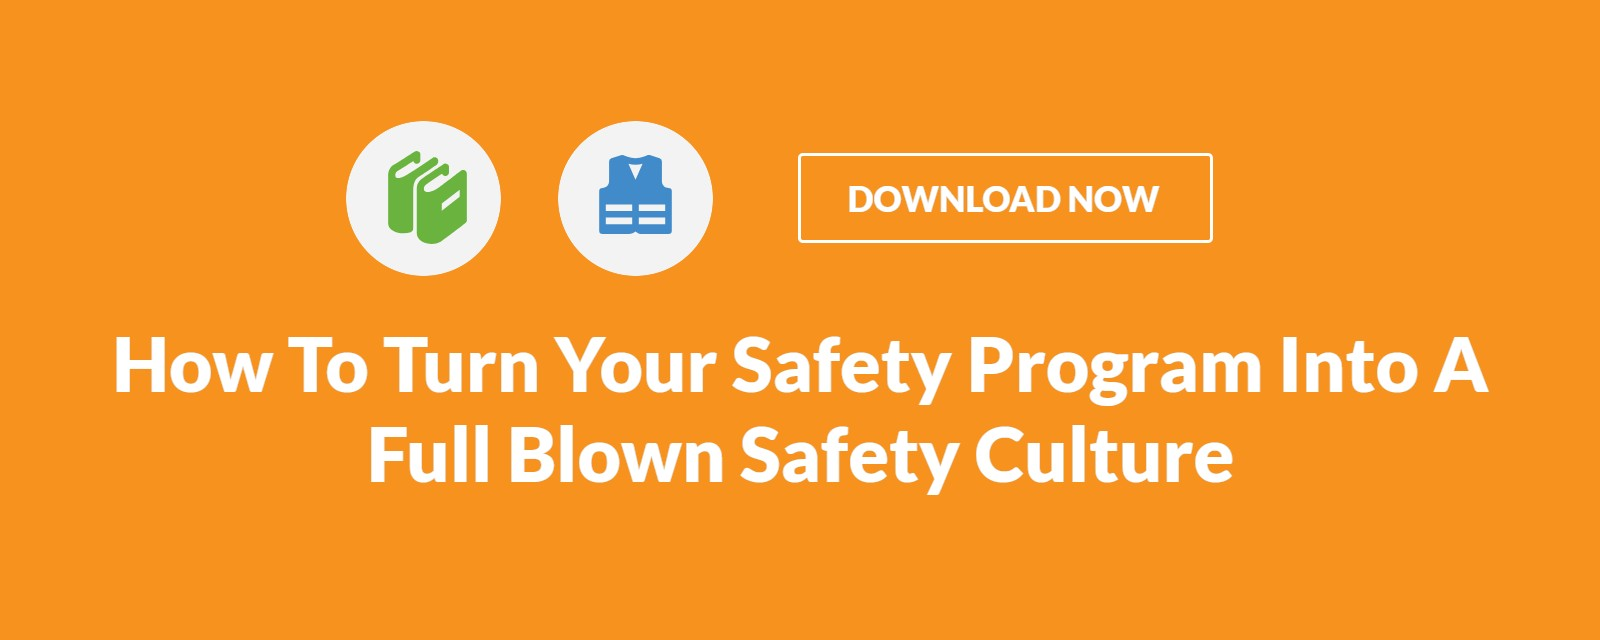 How To Turn Your Safety Program Into A Full Blown Safety Culture-Final-April 2019 - Blog CTA